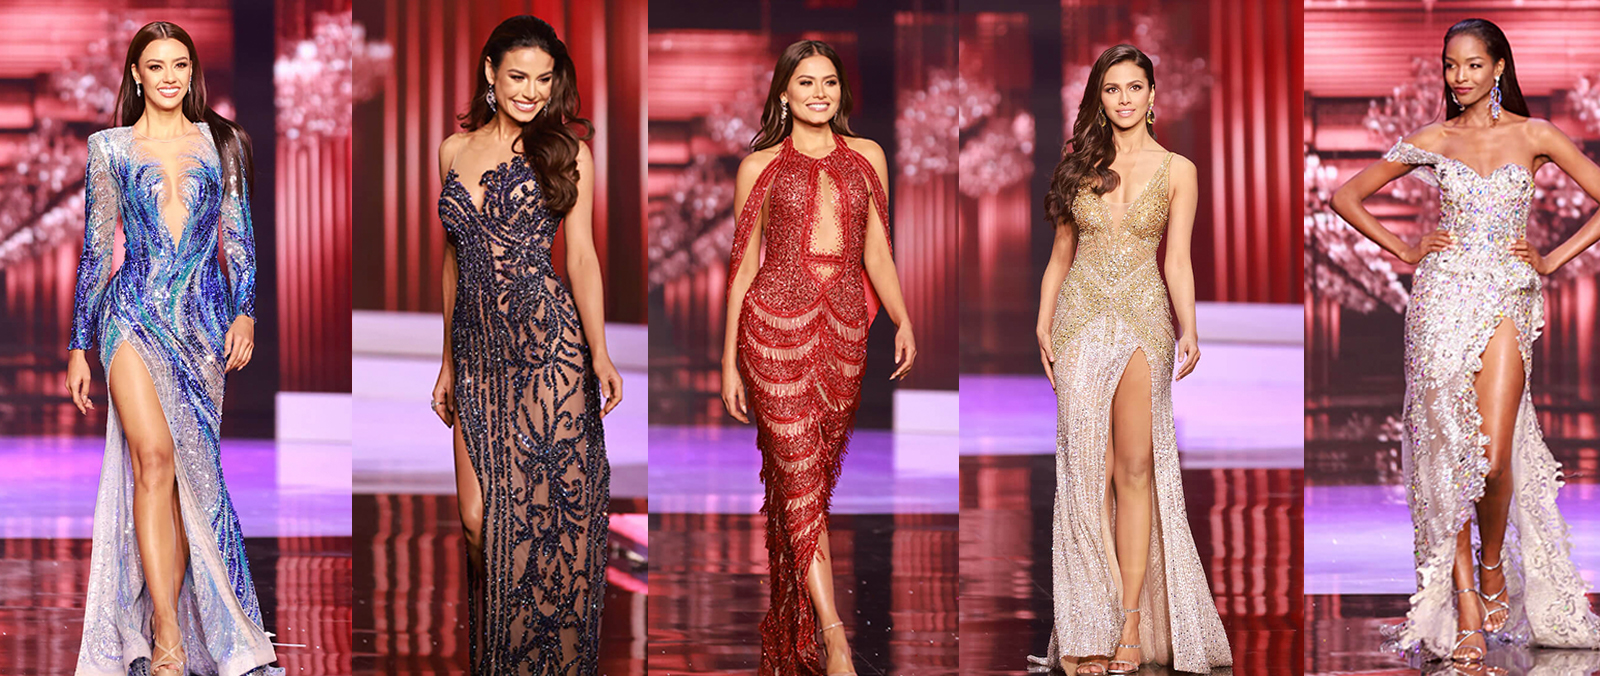 Recap: Evening Gowns of Top 10 Finalists and Miss Universe Winner